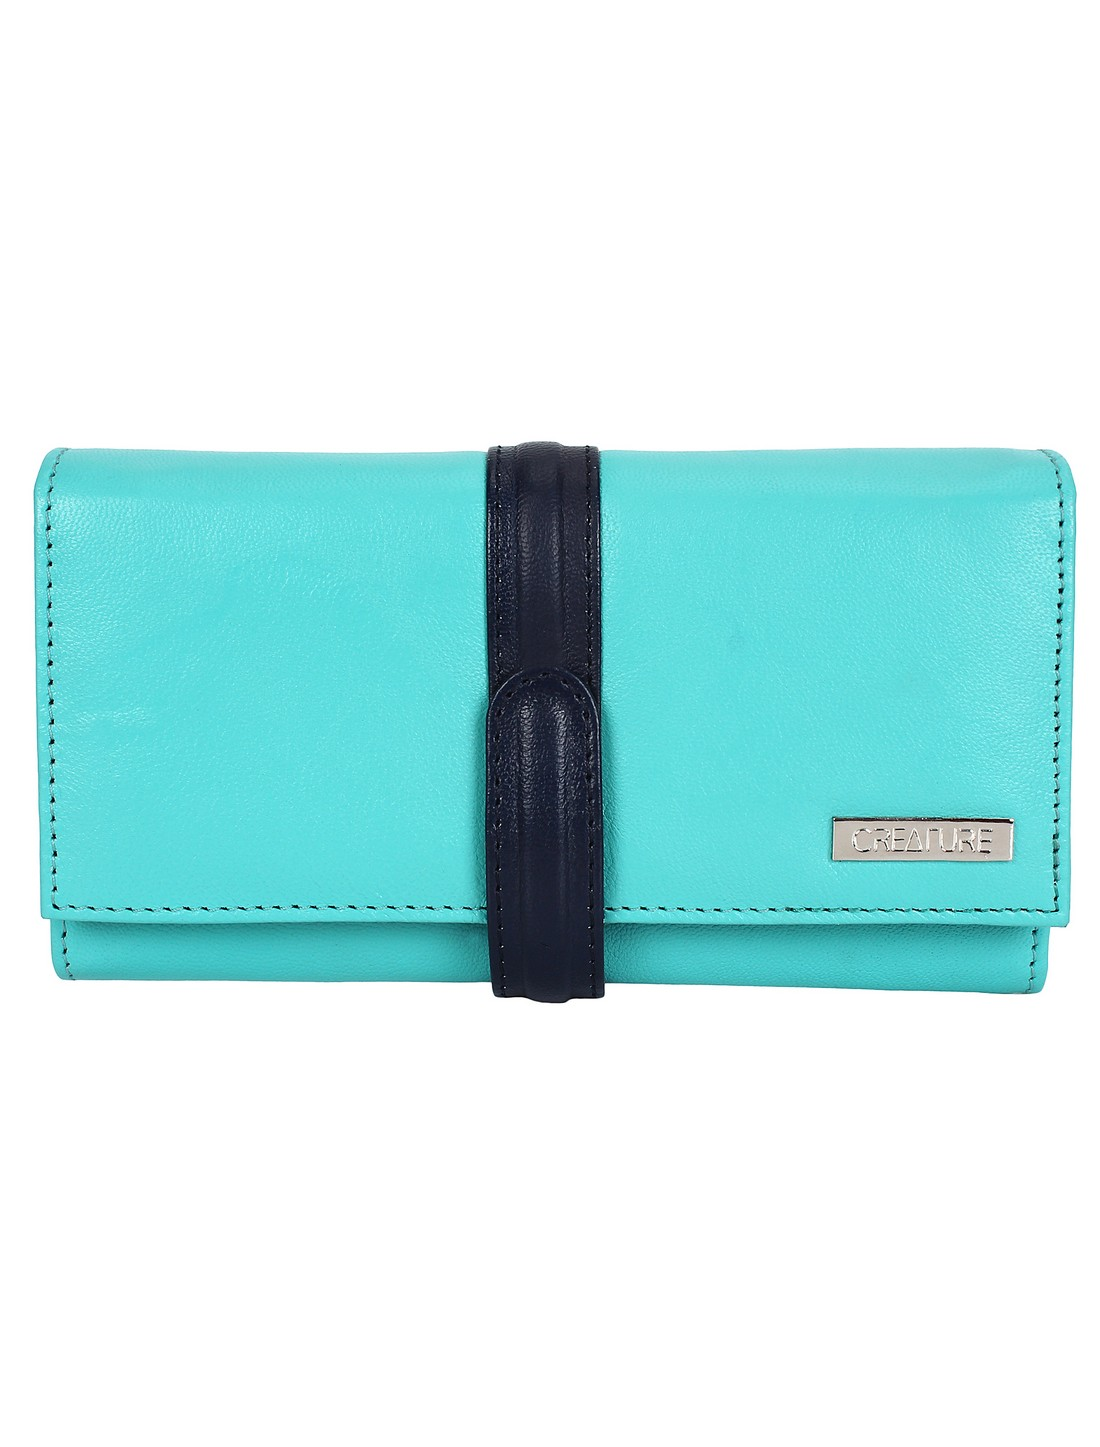 CREATURE   CREATURE Turquoise Blue Stylish Genuine Leather Clutch for Women